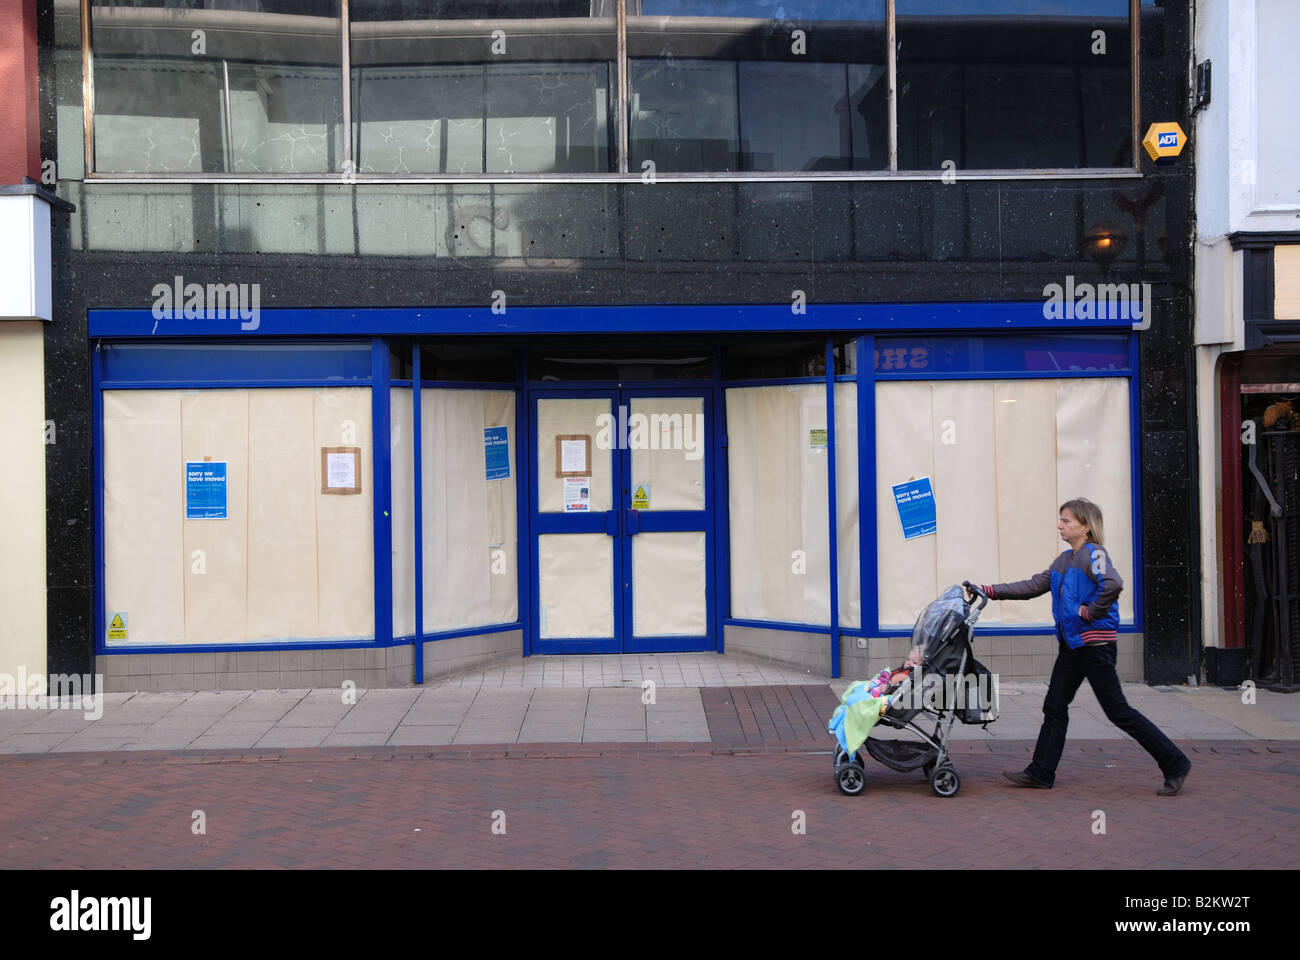 Closed down retail premises, Ipswich, Suffolk, UK. - Stock Image